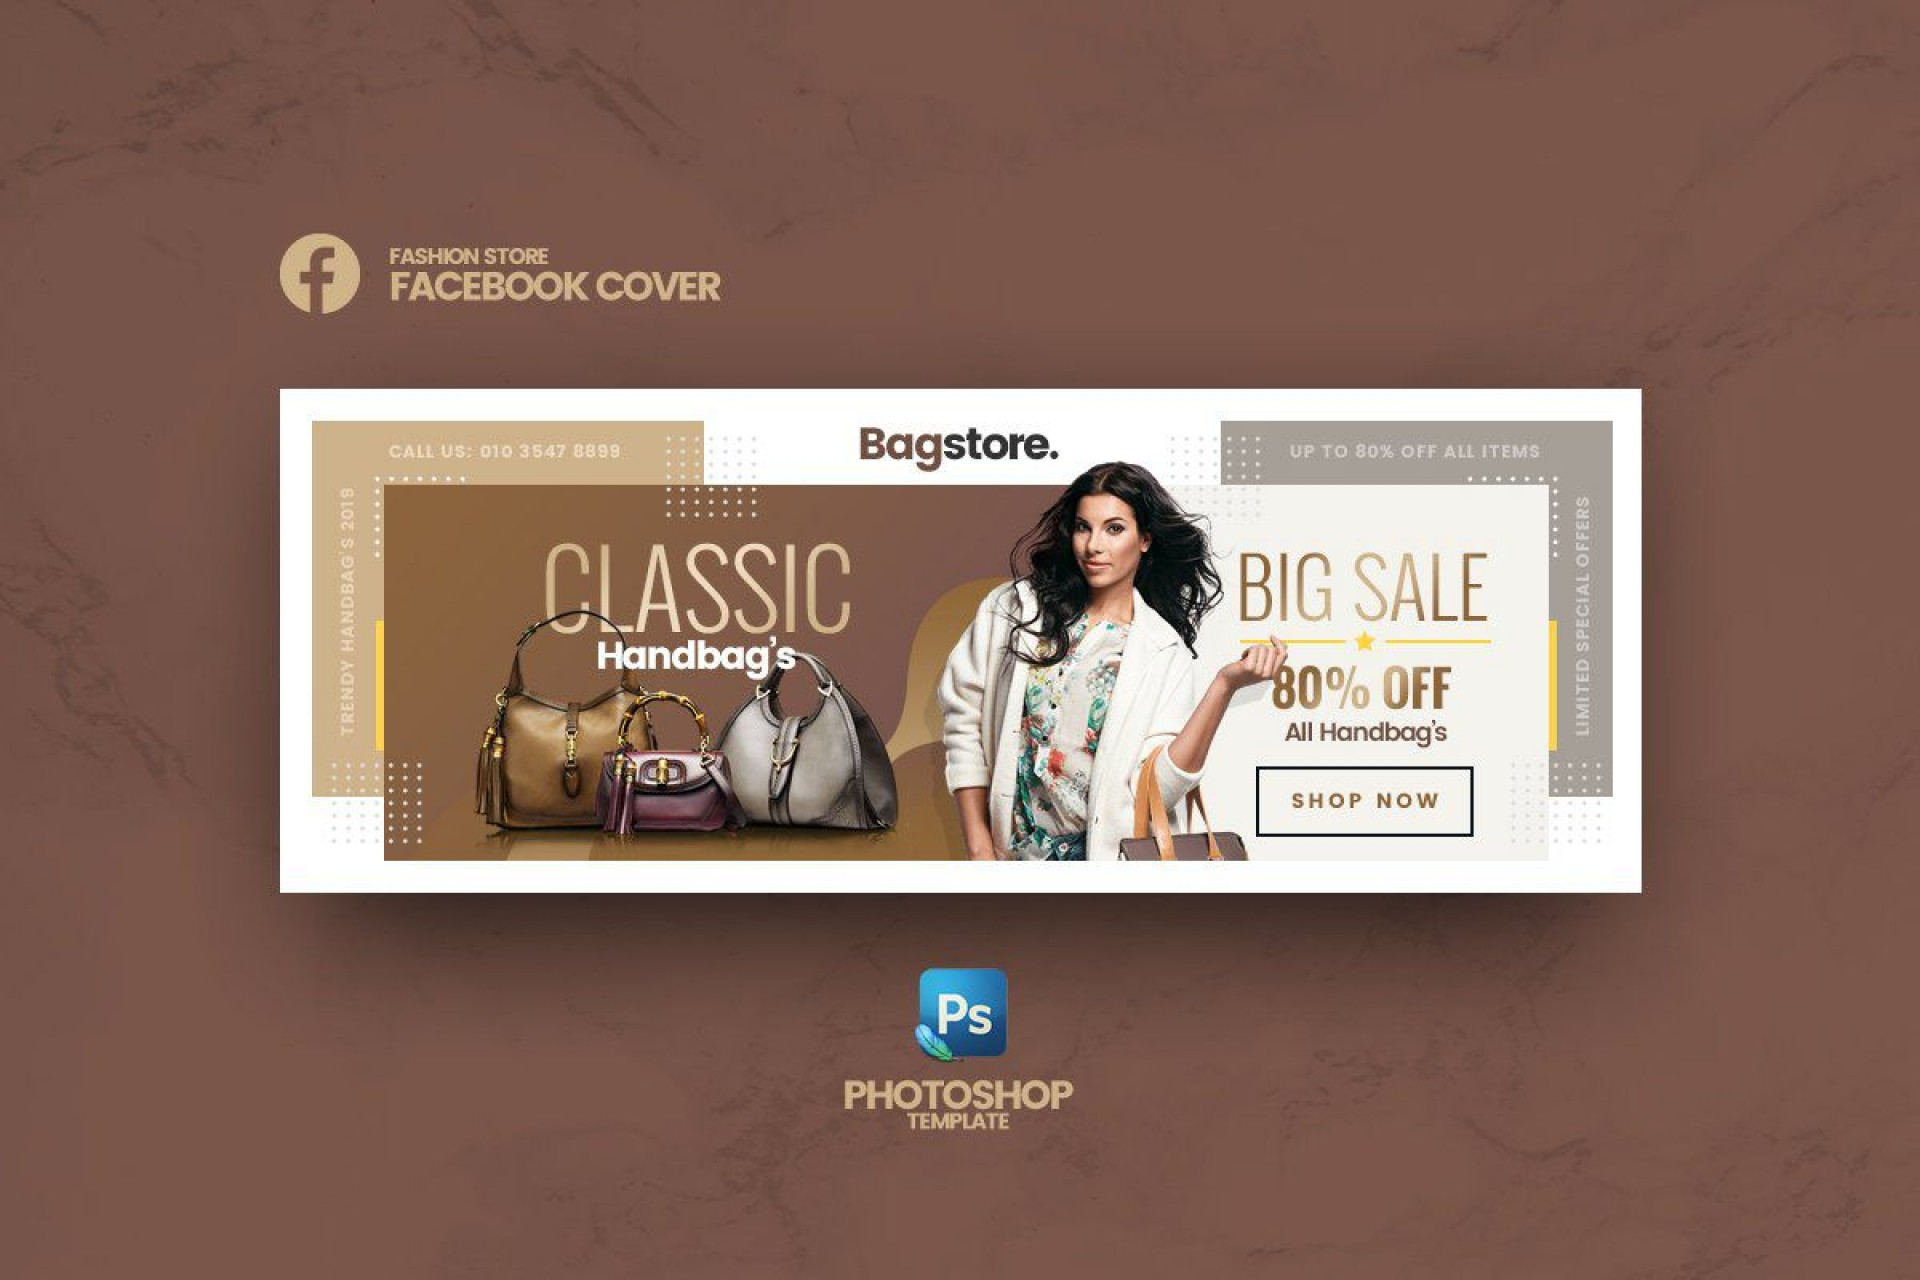 004 Stunning Facebook Cover Photo Photoshop Template  2019 Page Profile Picture Size1920